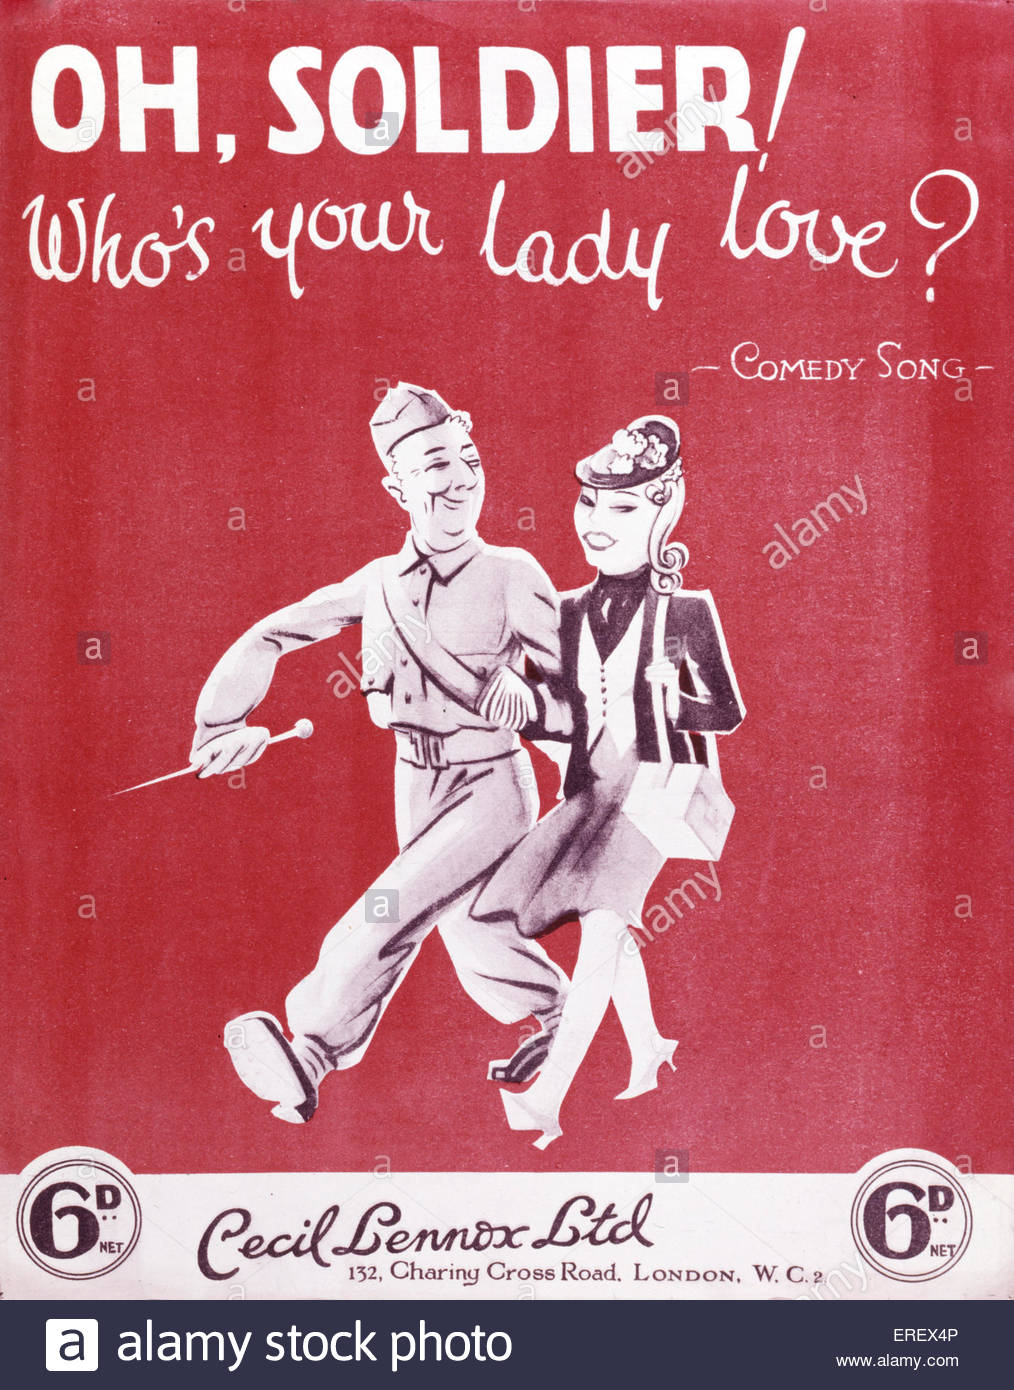 'Oh, soldier! Who's your lady love?' -  score cover to World War 2 song. Published by Cecil Lennox Ltd. - Stock Image